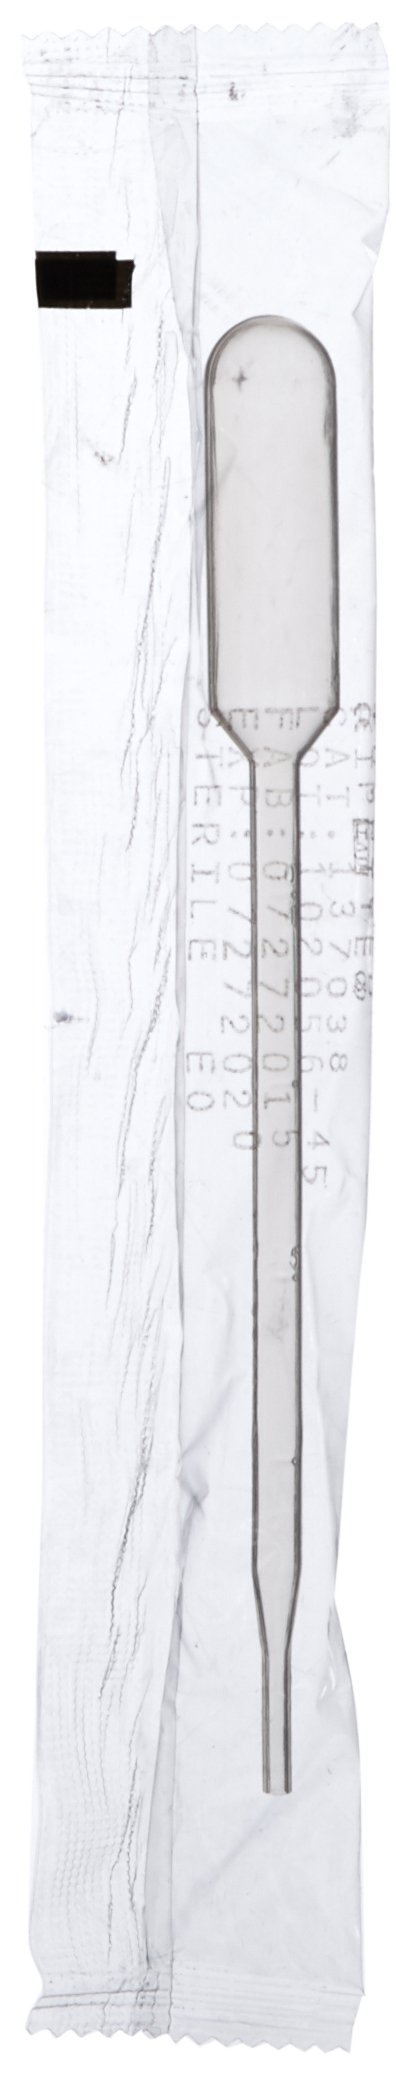 Globe Scientific 137038 LDPE Graduated Transfer Pipet, Large Bulb, Sterile, Individually Wrapped, Cellophane Pack, 145mm Length, 5.0mL Capacity (Case of 400)